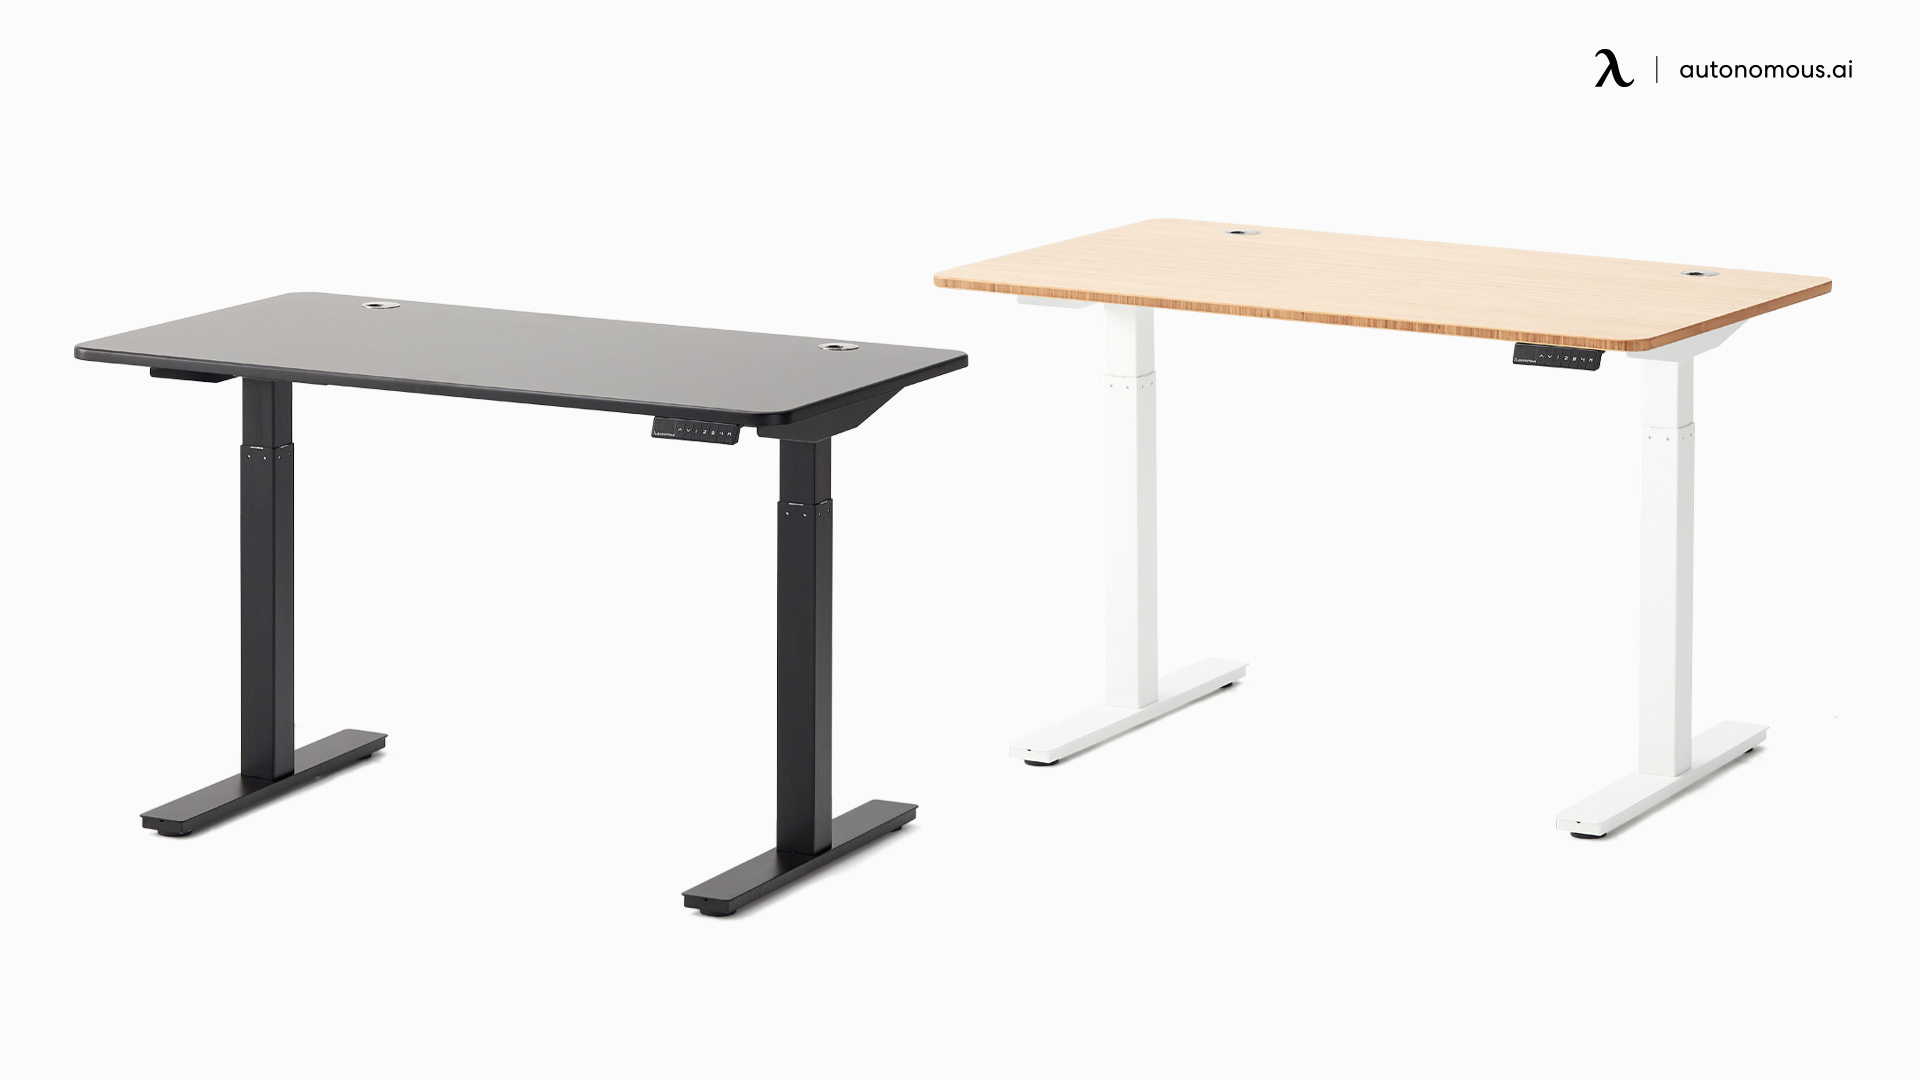 https://cdn.autonomous.ai/static/upload/images/common/upload/20210527/Transforming_your_Manual_standing_Desk_to_an_Electric_Standing_Desk_89c466cd3b2.jpg